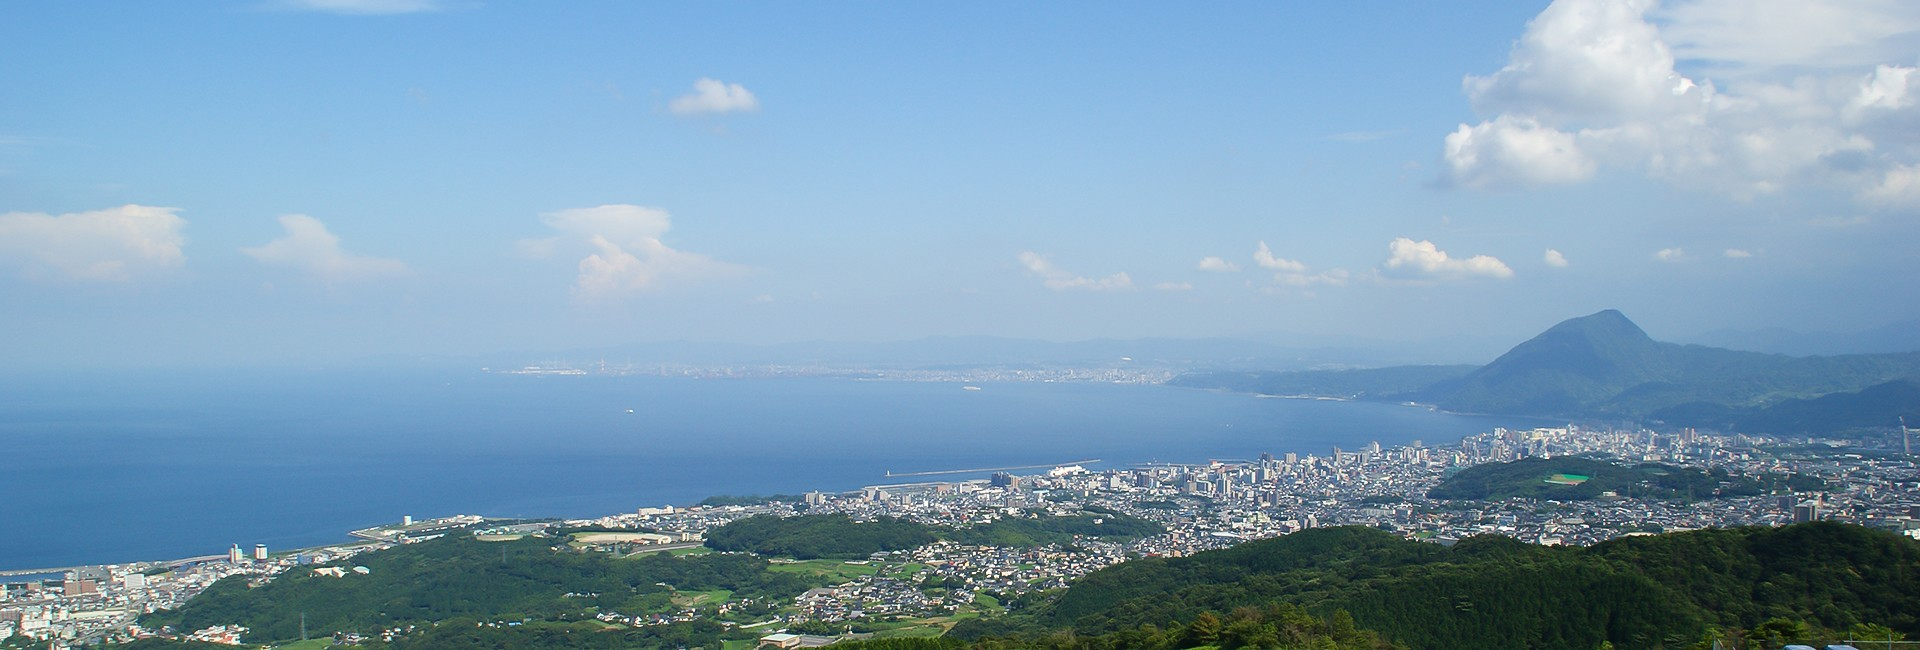 view of Beppu in Japan